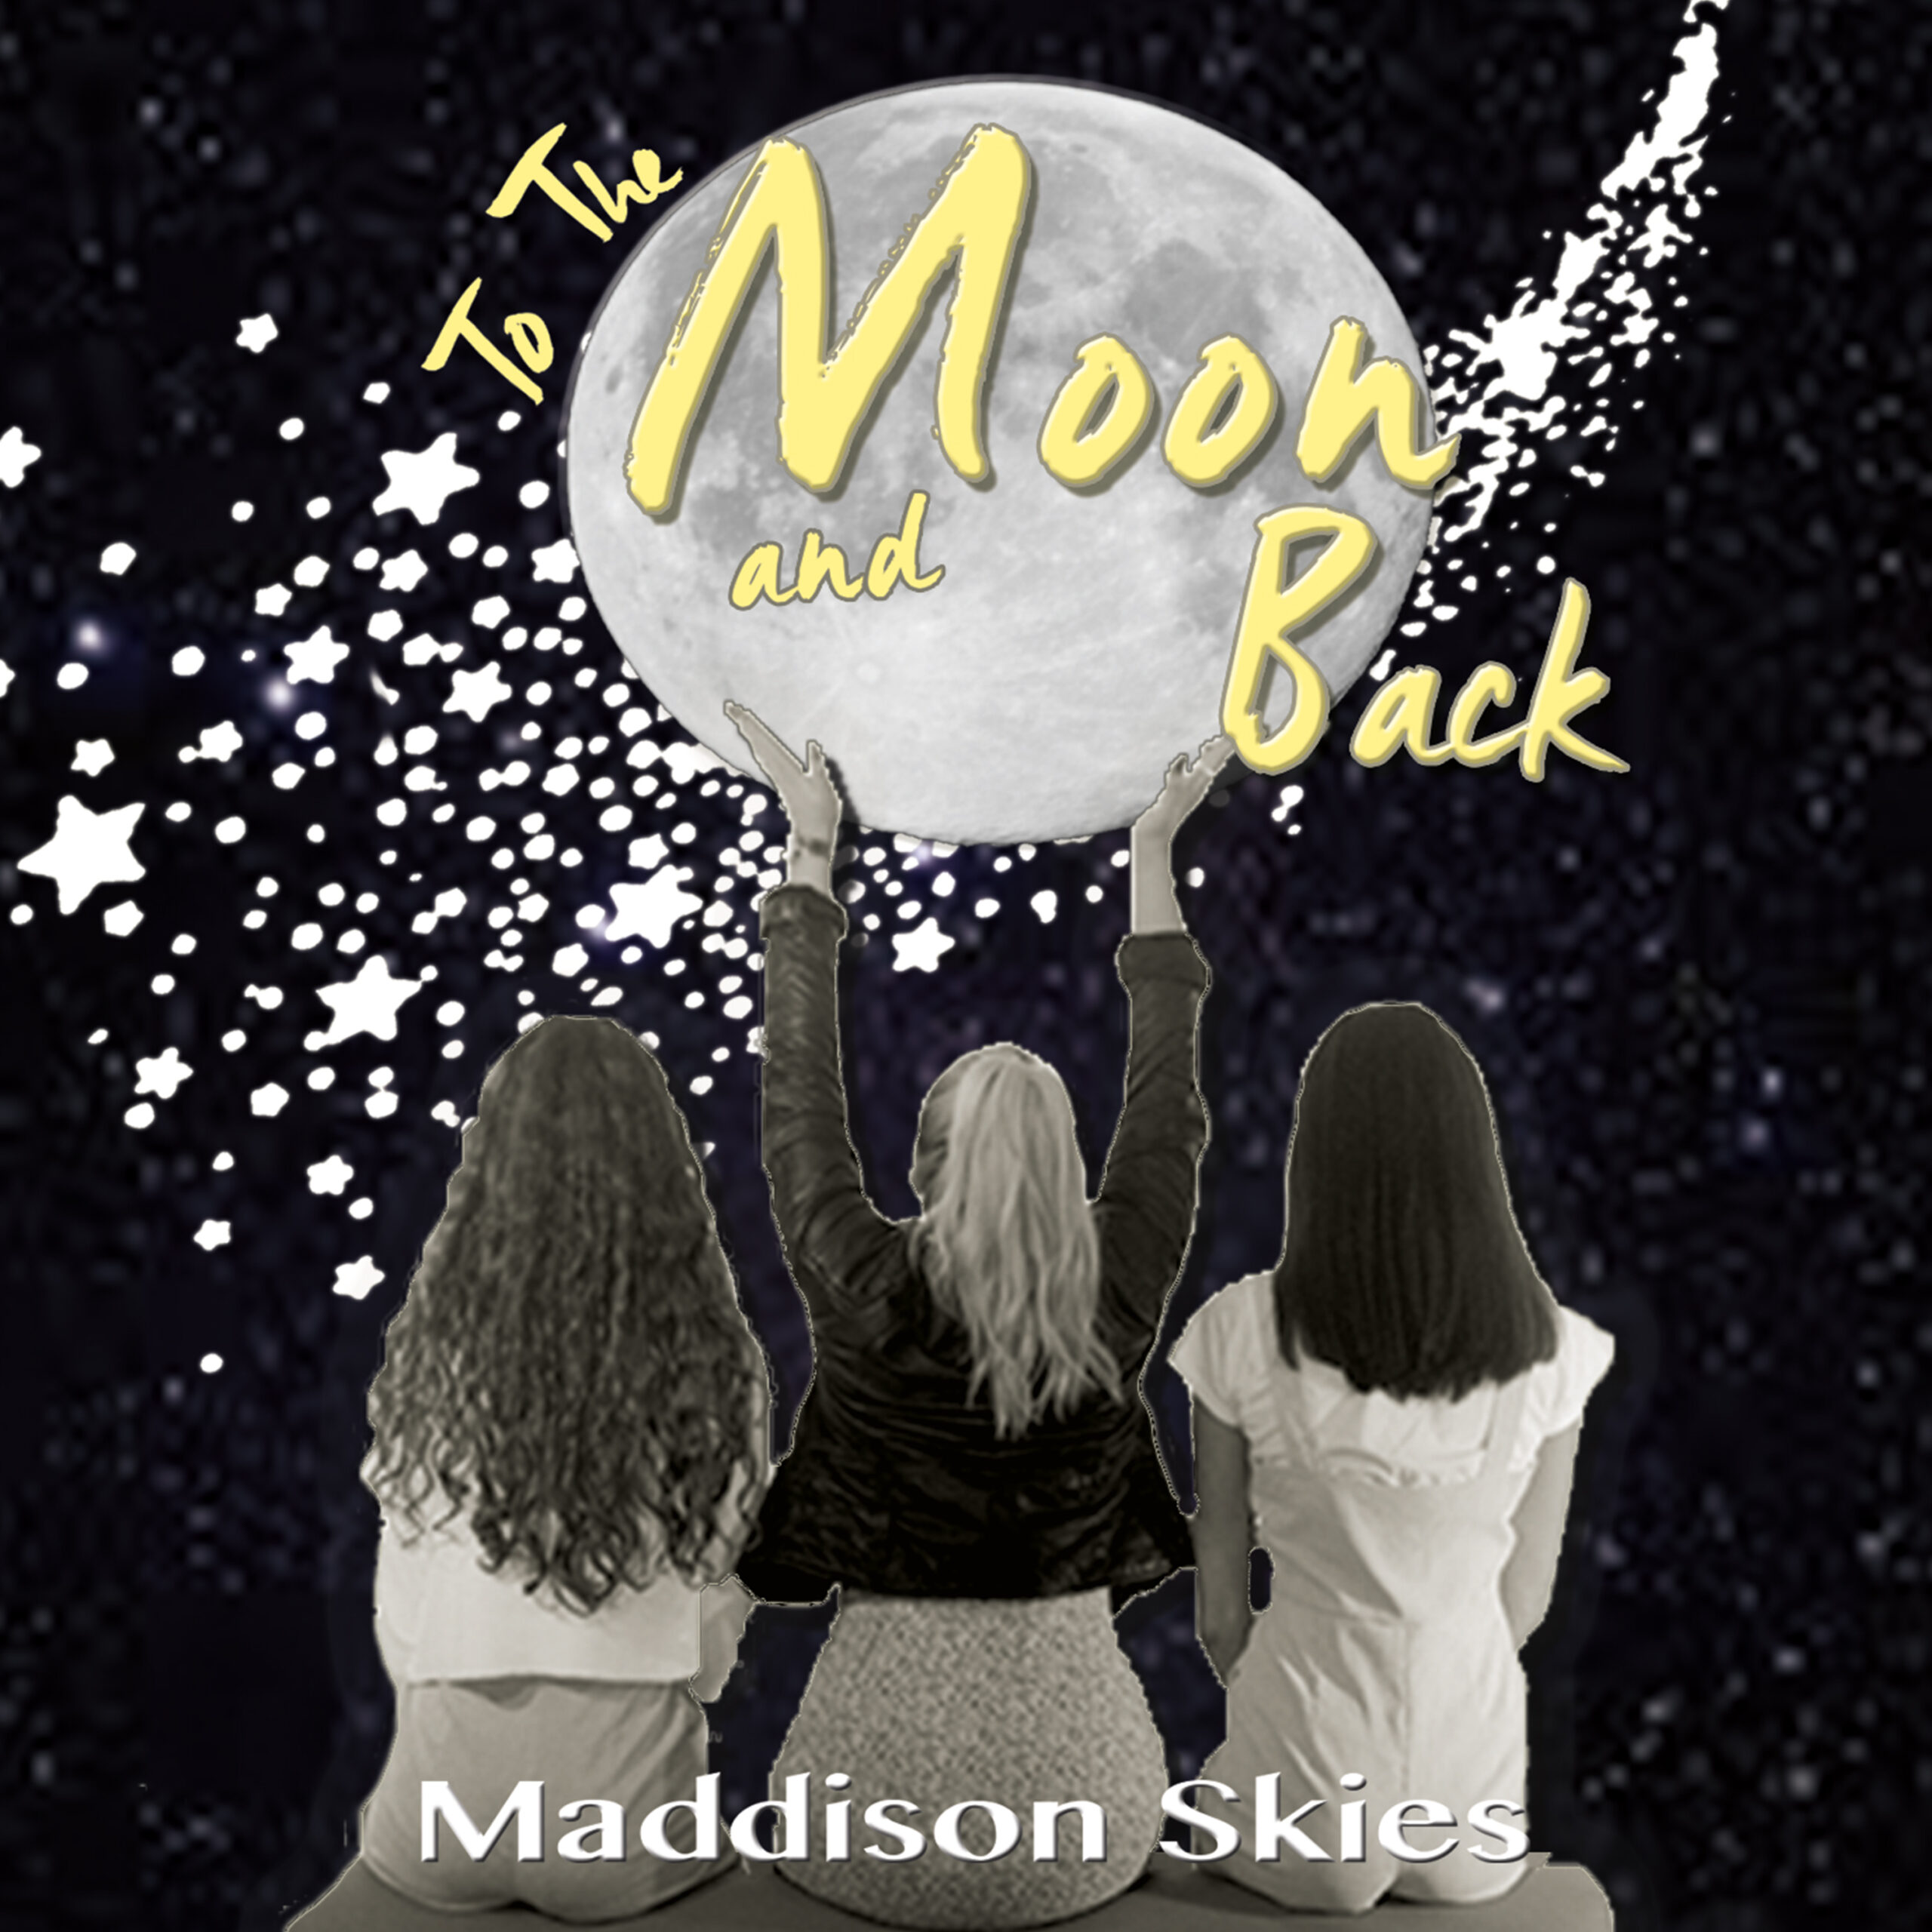 Maddison Skies - To The Moon And Back